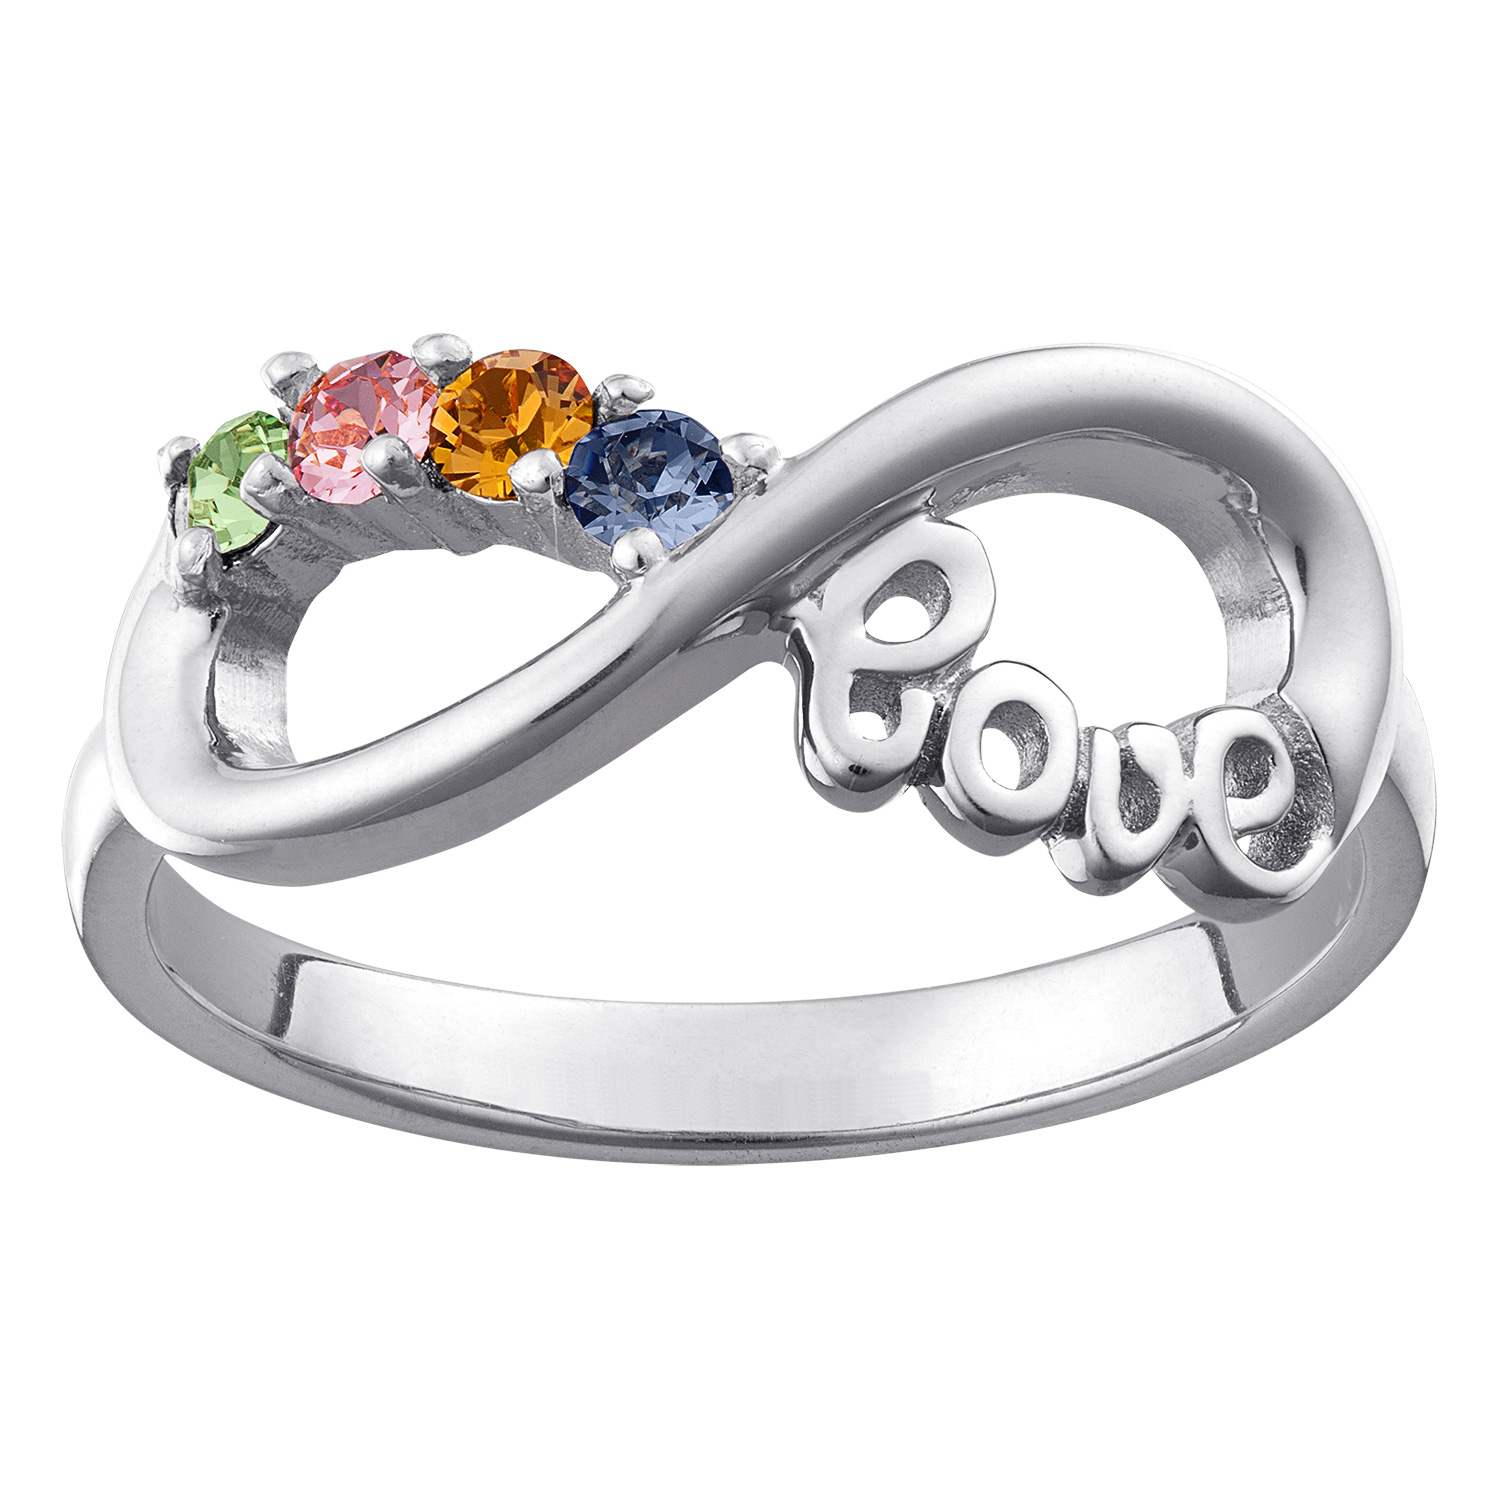 sterling silver infinity love birthstone ring 4 stones 39564 limoges jewelry. Black Bedroom Furniture Sets. Home Design Ideas